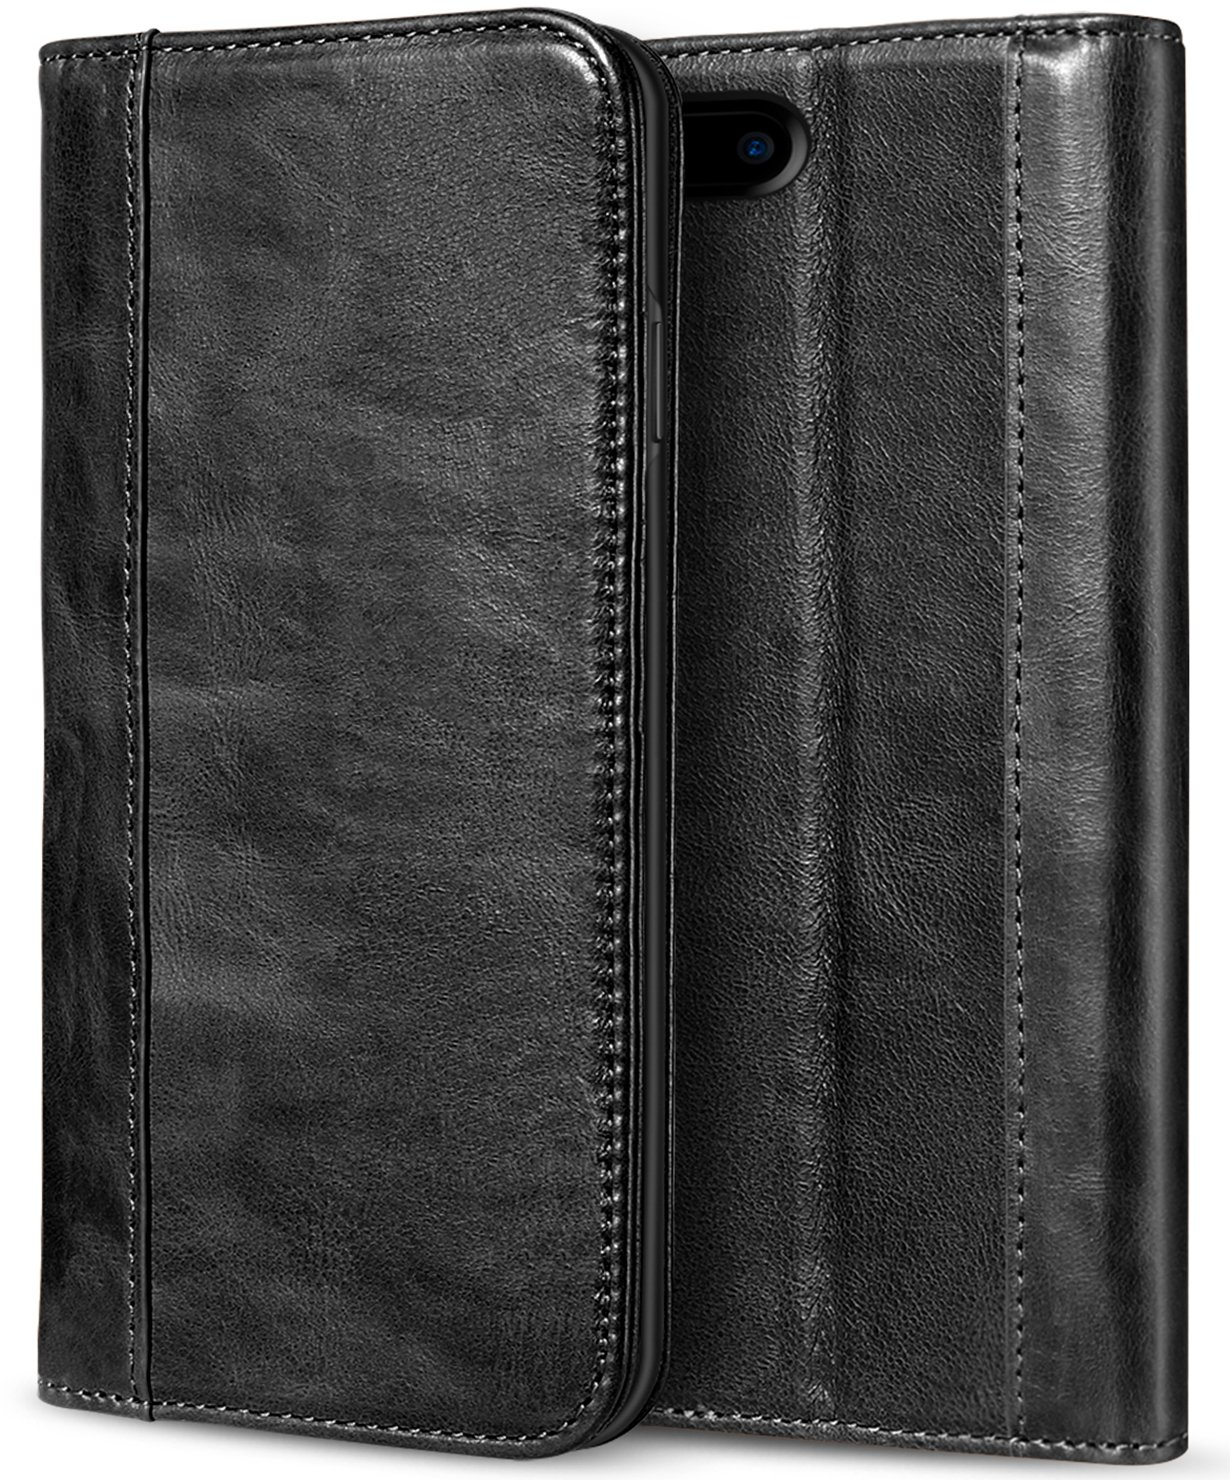 separation shoes c93b3 3fe02 ProCase iPhone 8 Plus 7 Plus Genuine Leather Case, Wallet Folding Flip Case  with Kickstand Card Slots Magnetic Closure Protective Cover for Apple ...